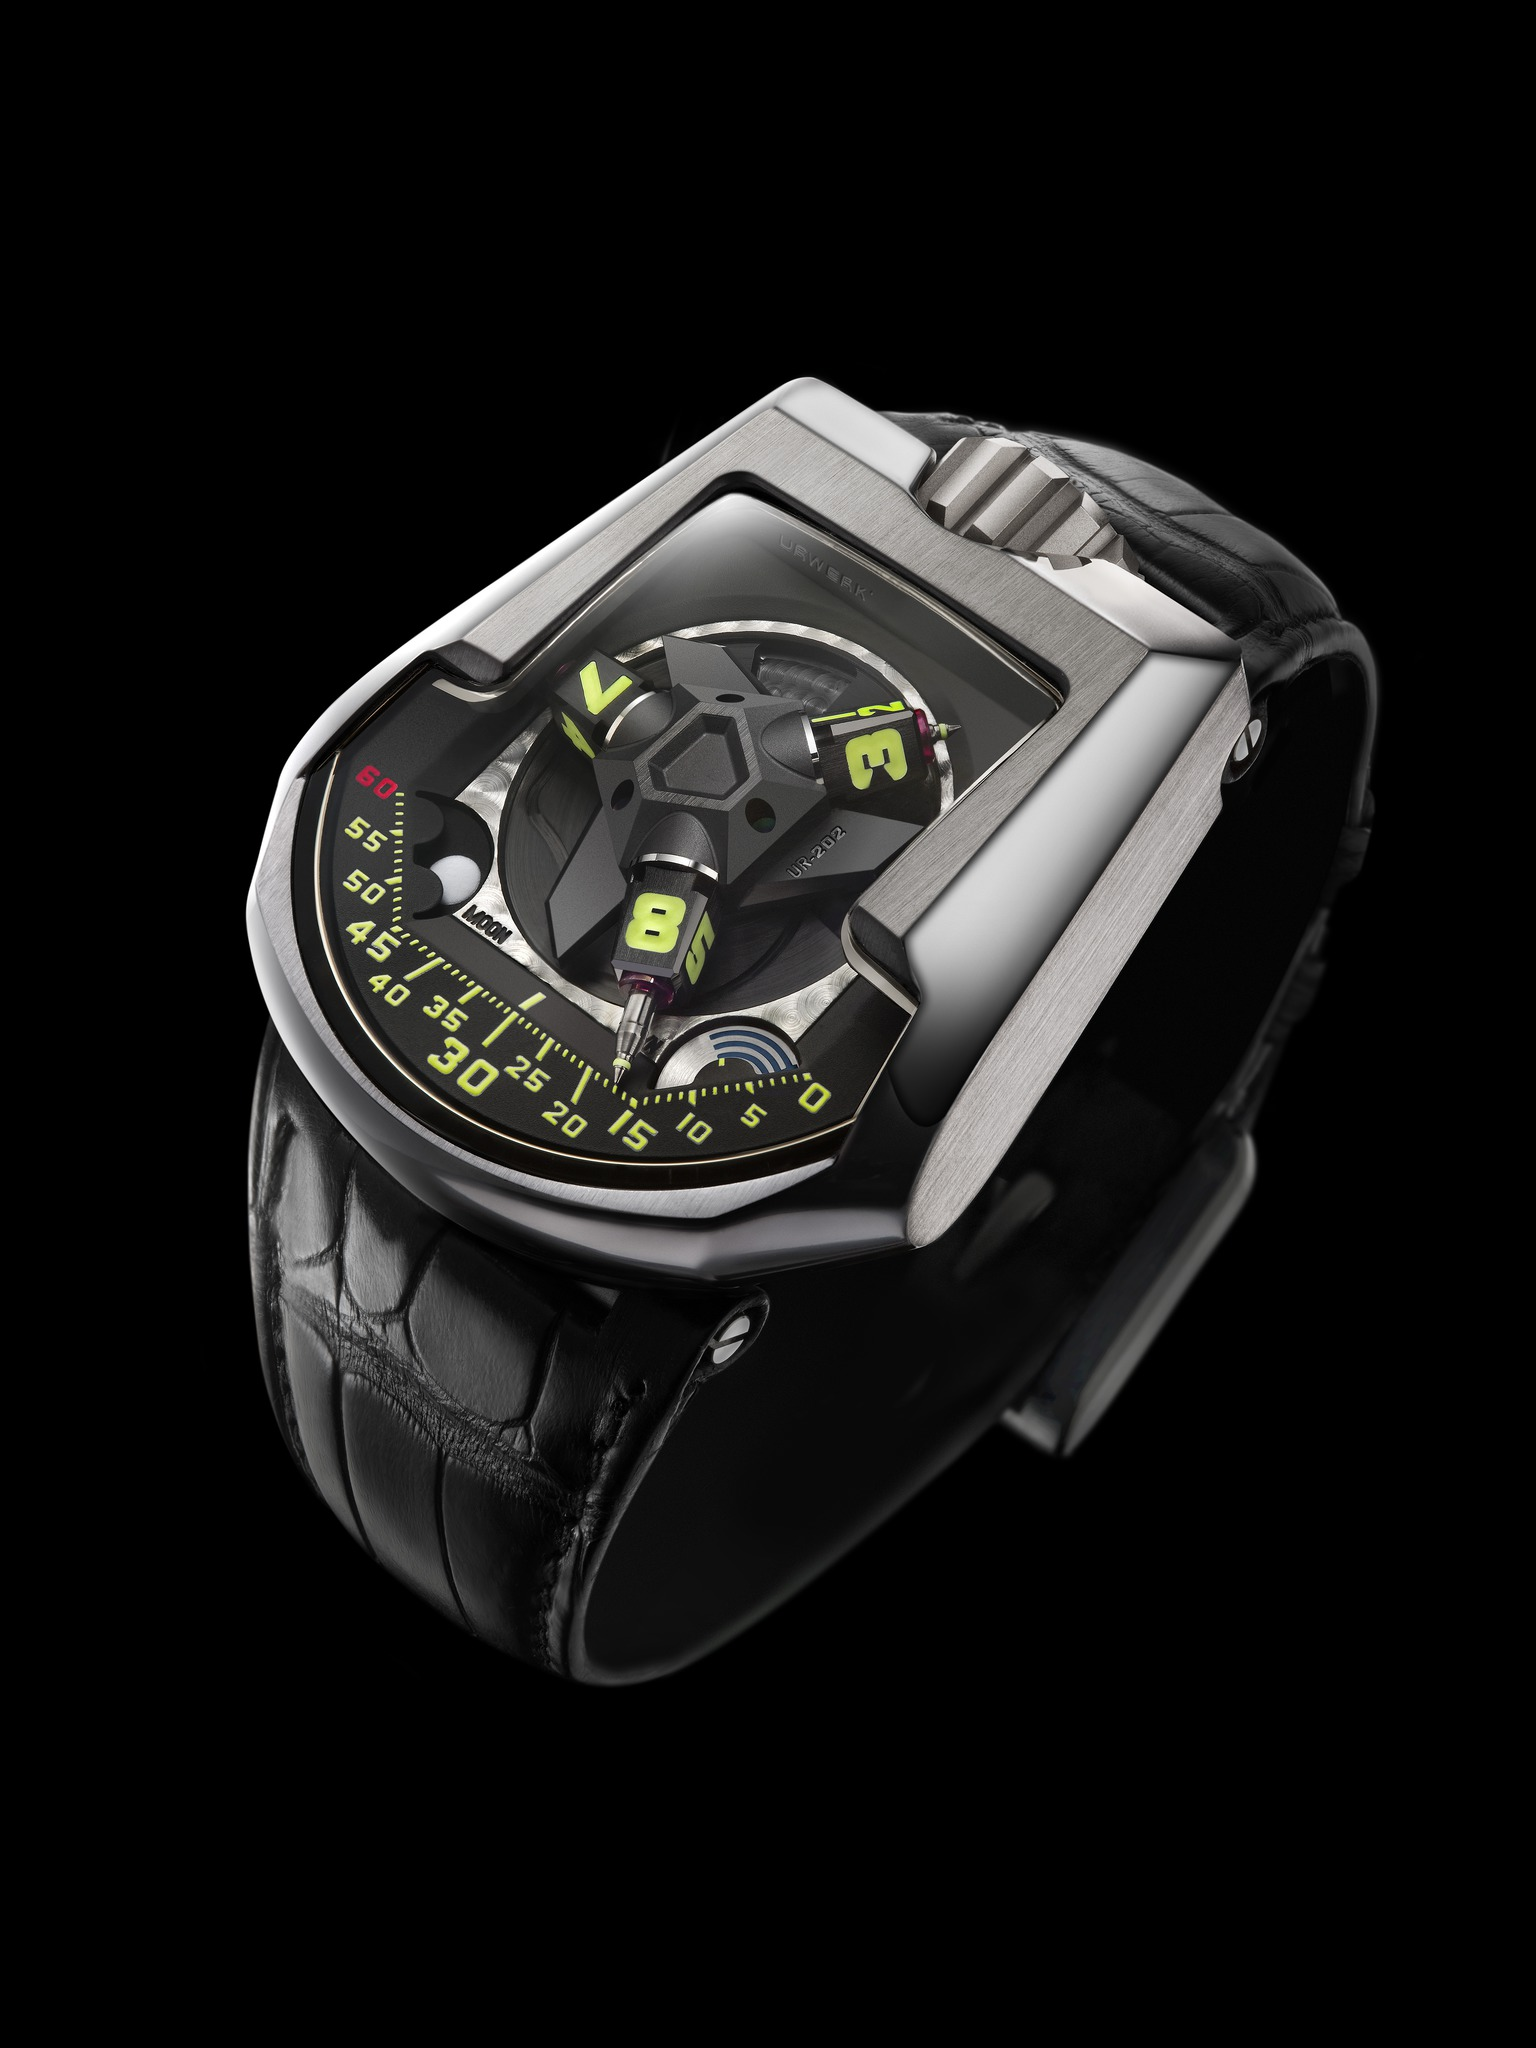 Replica Urwerk UR-202 White Gold Watch